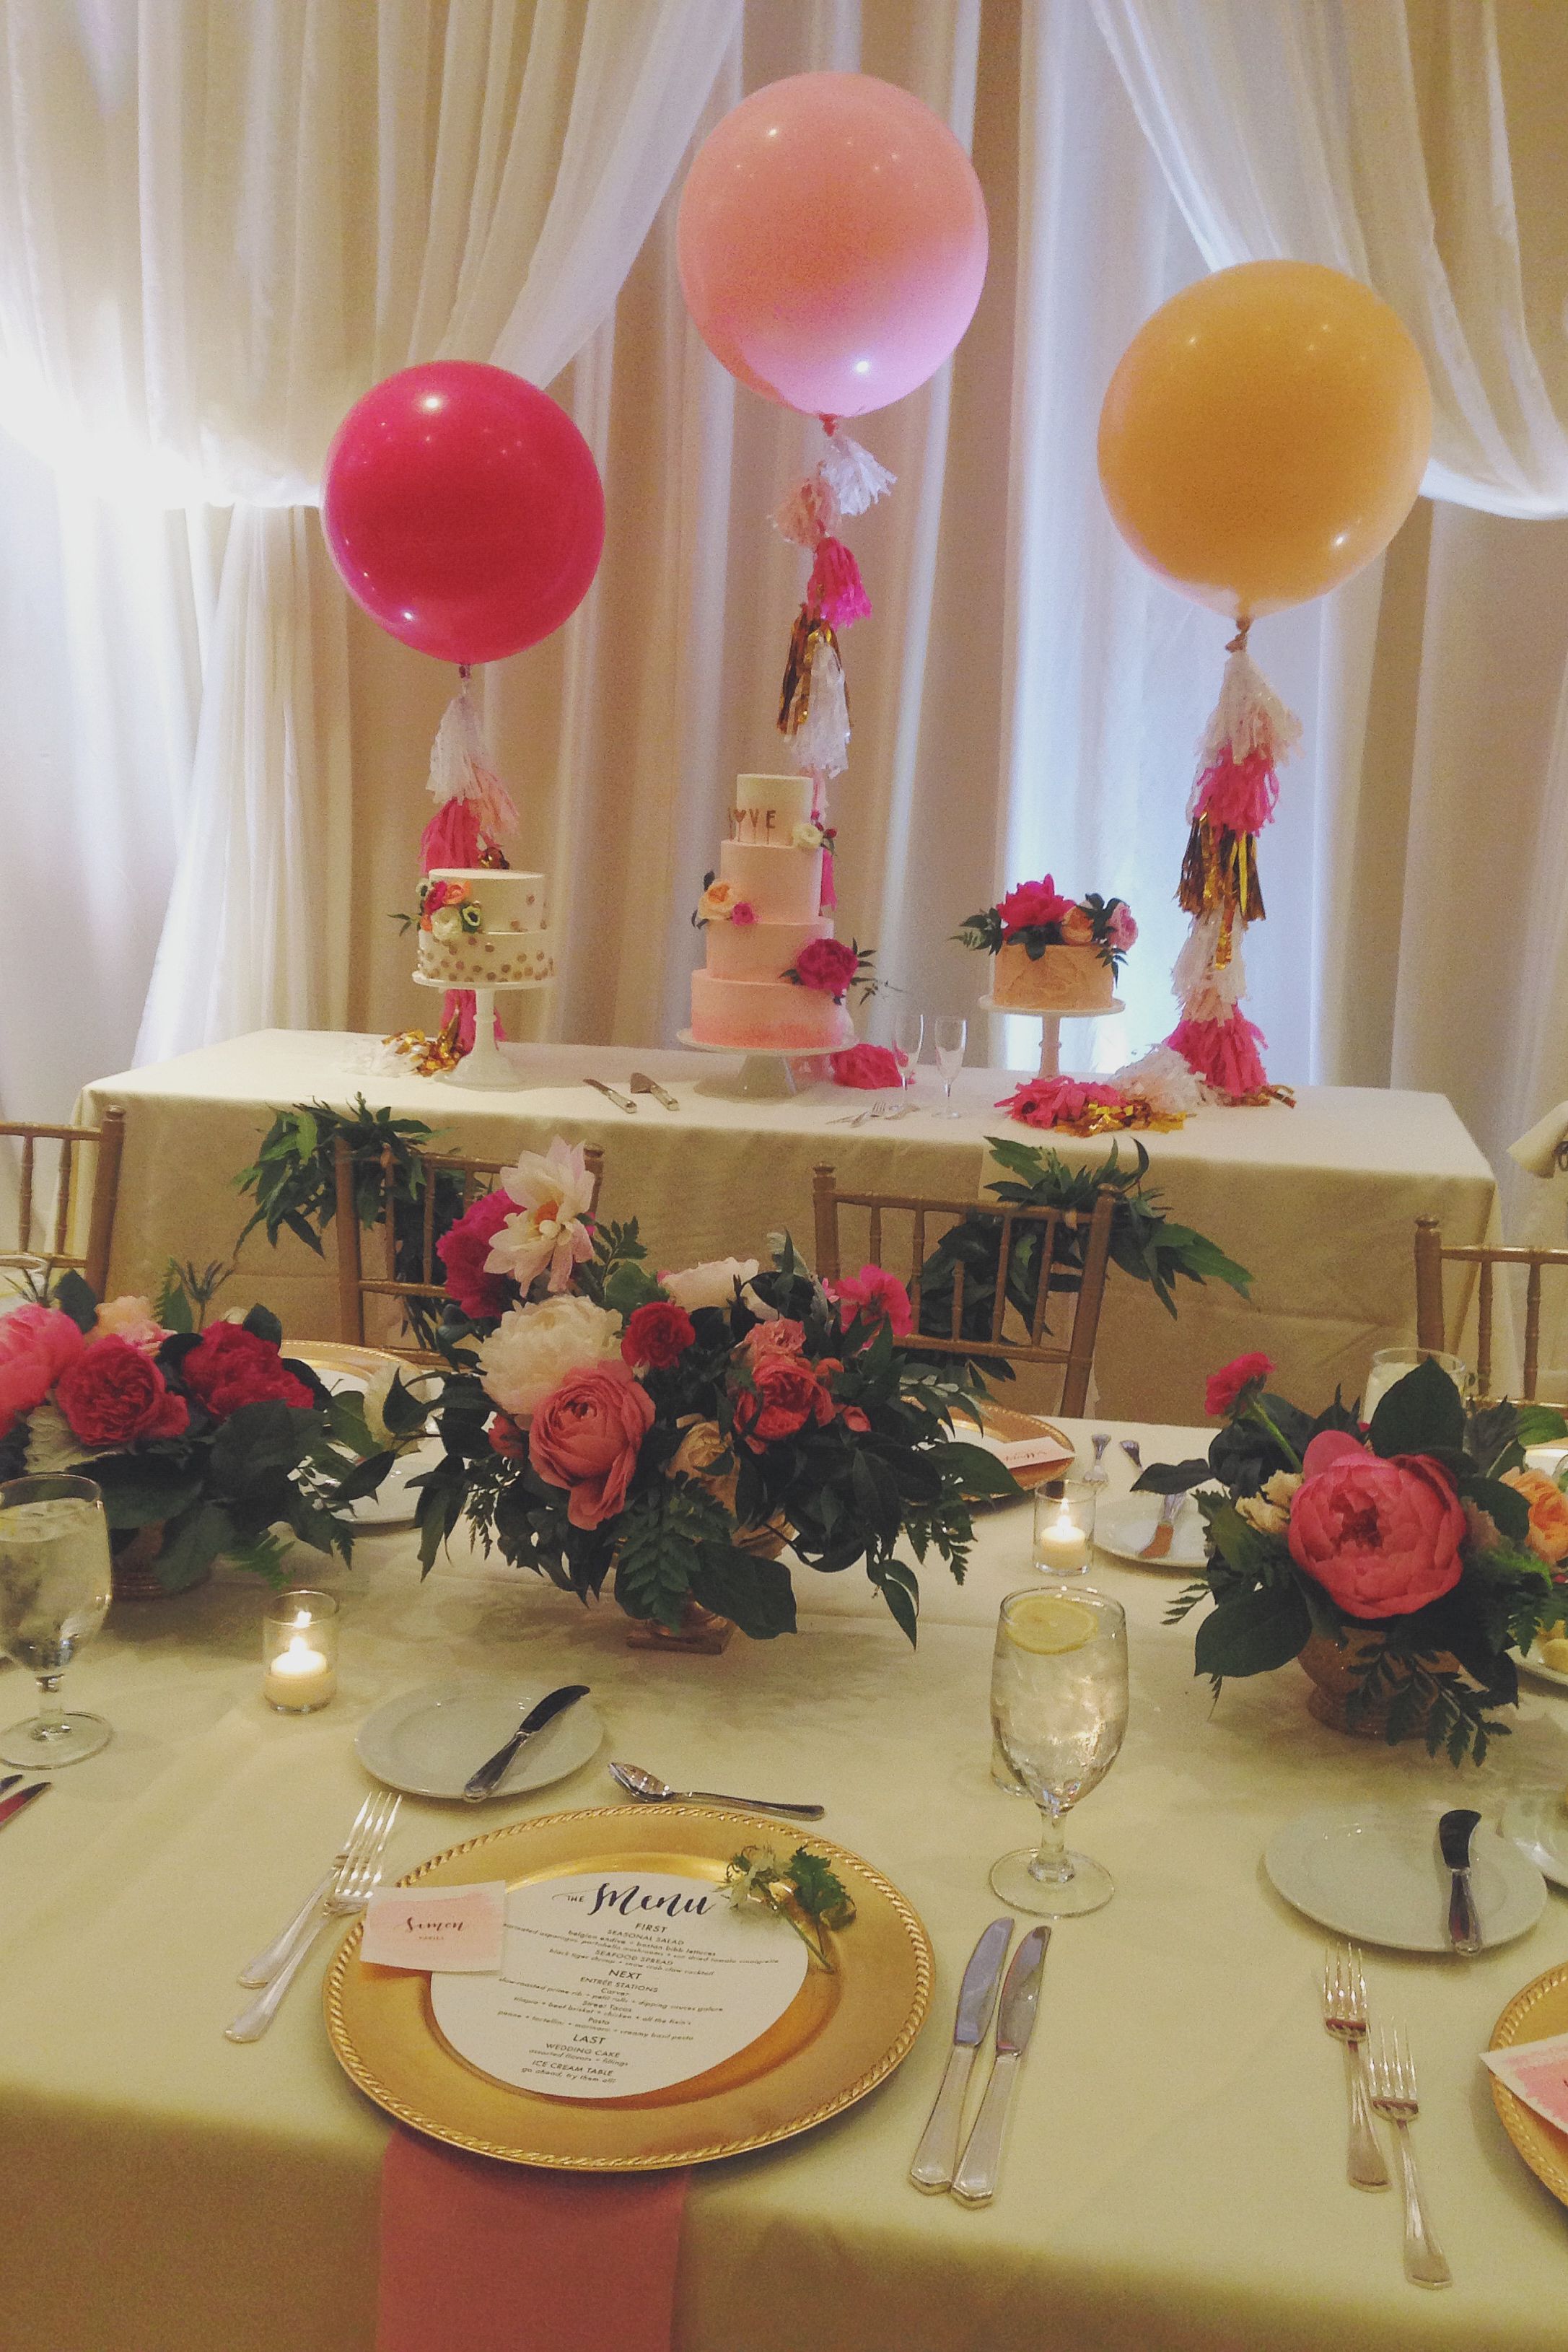 Fun and pretty Dallas / Fort Worth wedding by Grit + Gold Southern Wedding Group complete with florals by The Southern Table, cakes by Cake Walk Bake Shop, and giant ombré fancy balloons with fringe tails #pinkandgold #gritandgold #dallasweddingplanner